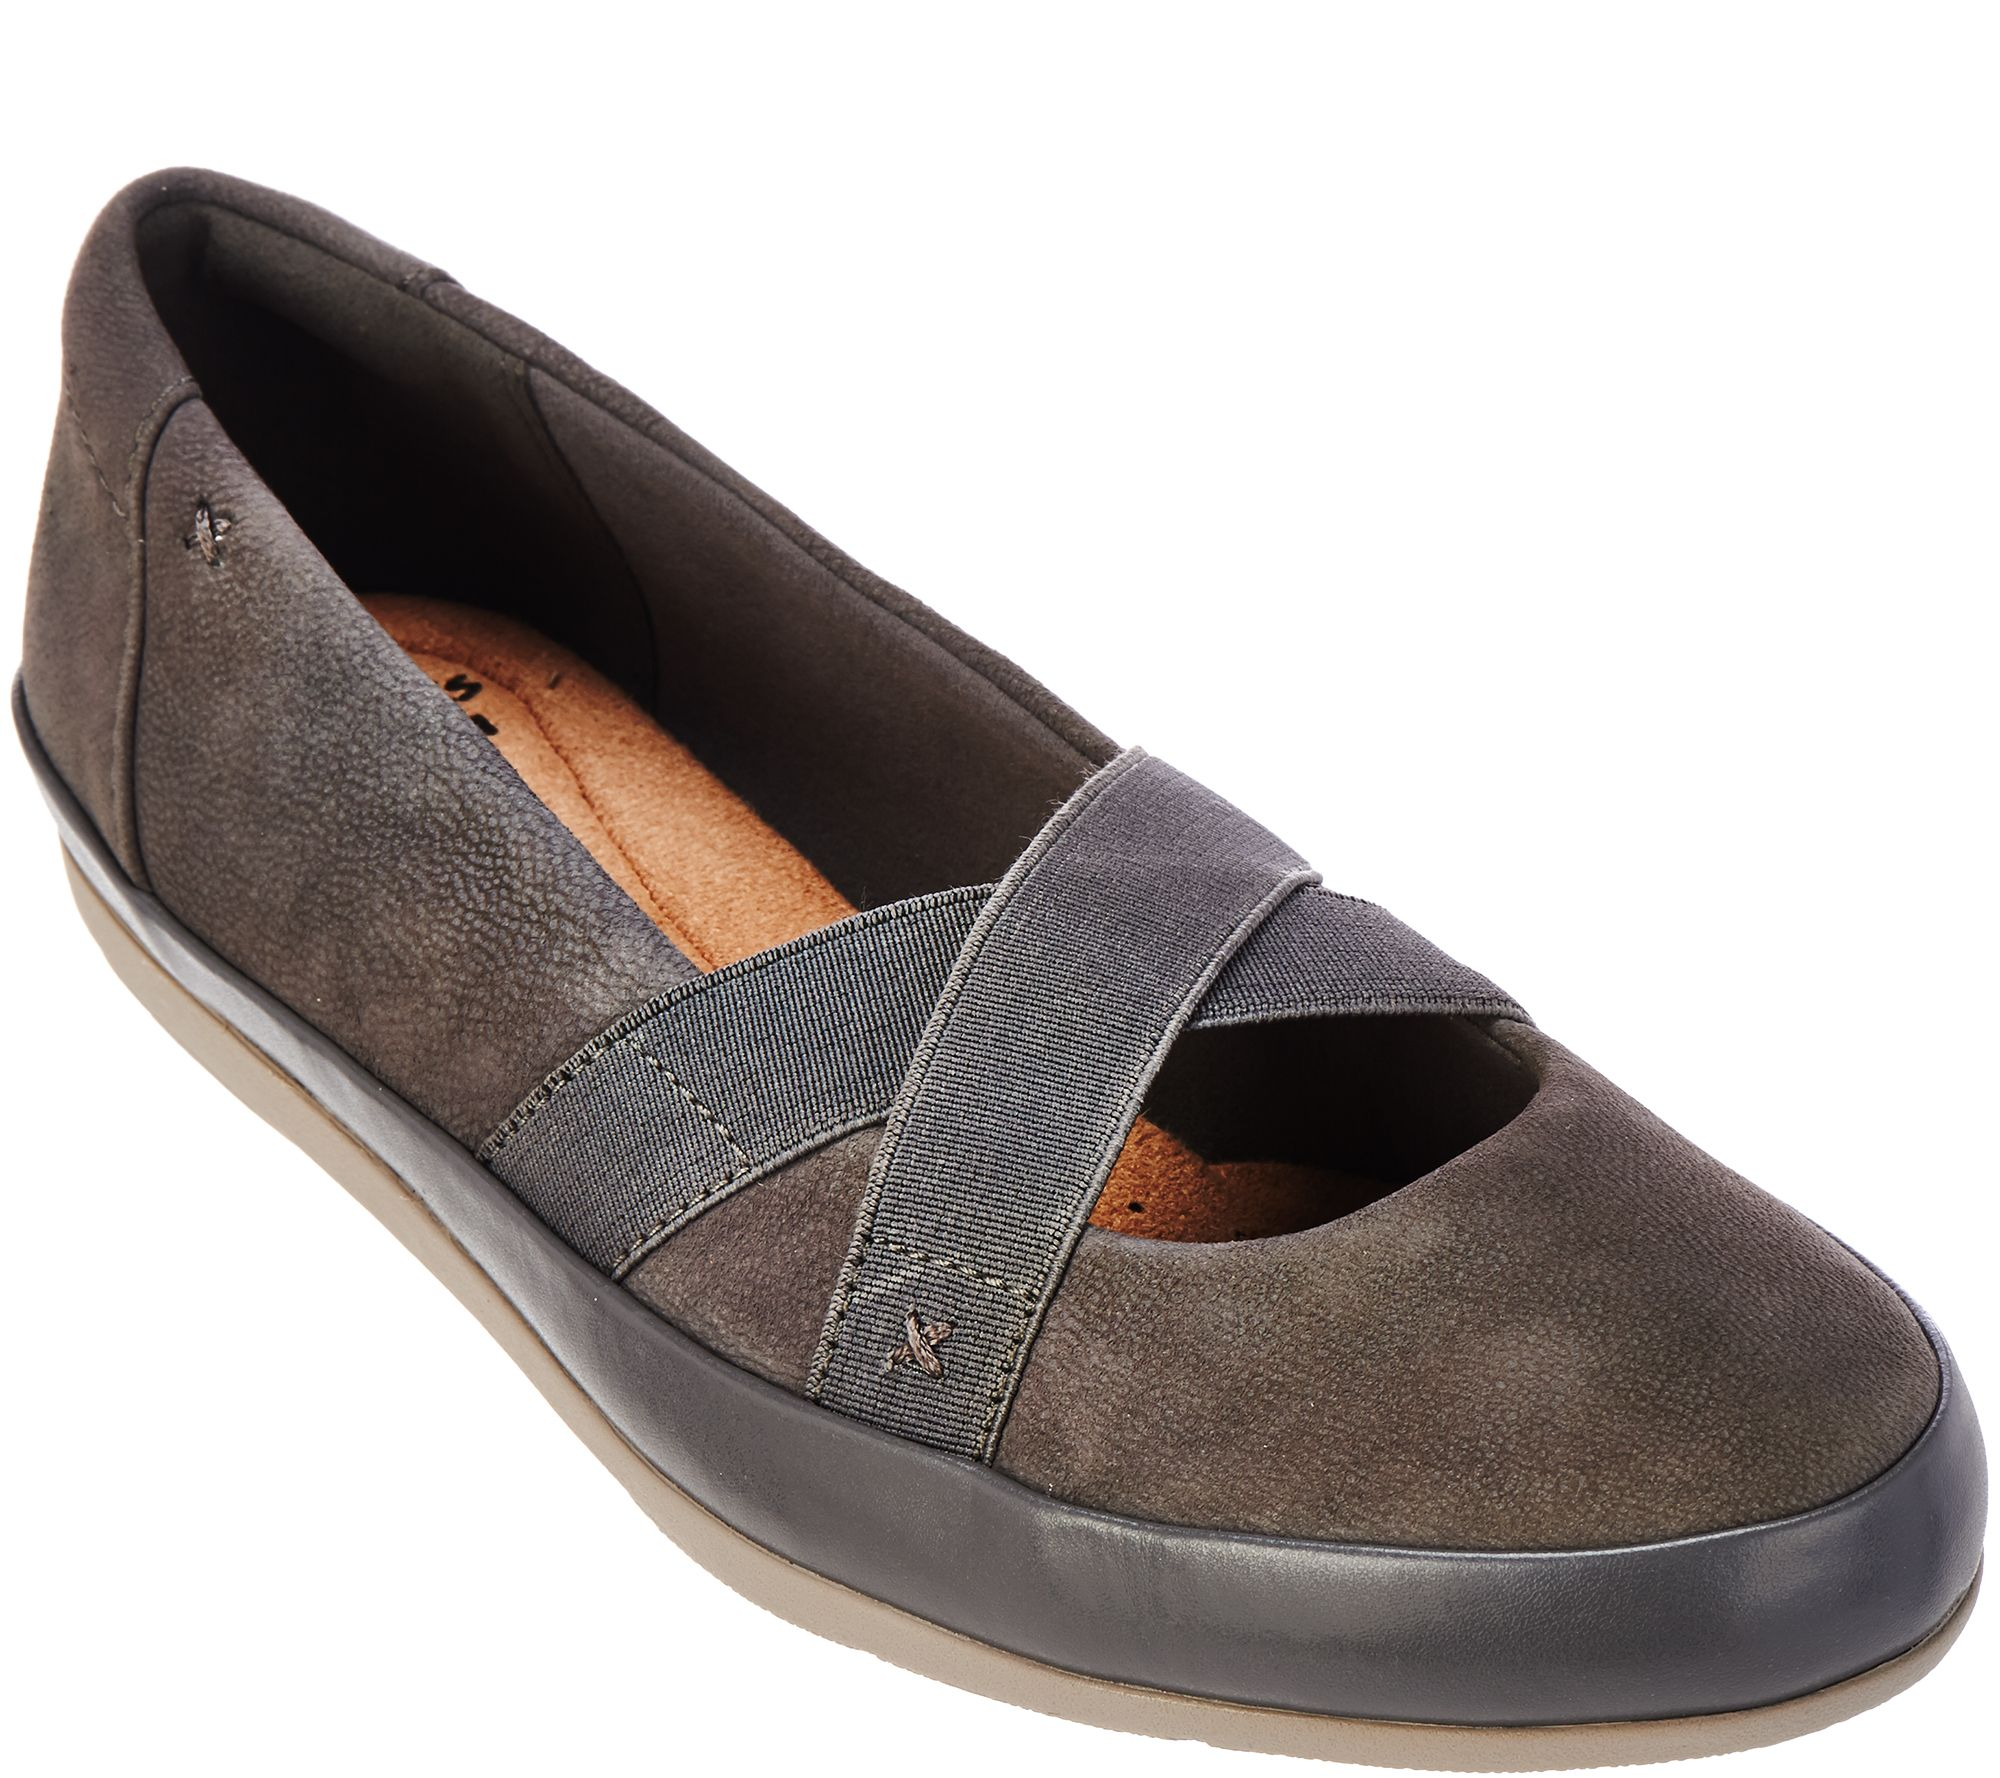 Quot As Is Quot Clarks Collection Nubuck Leather Slip On Shoes